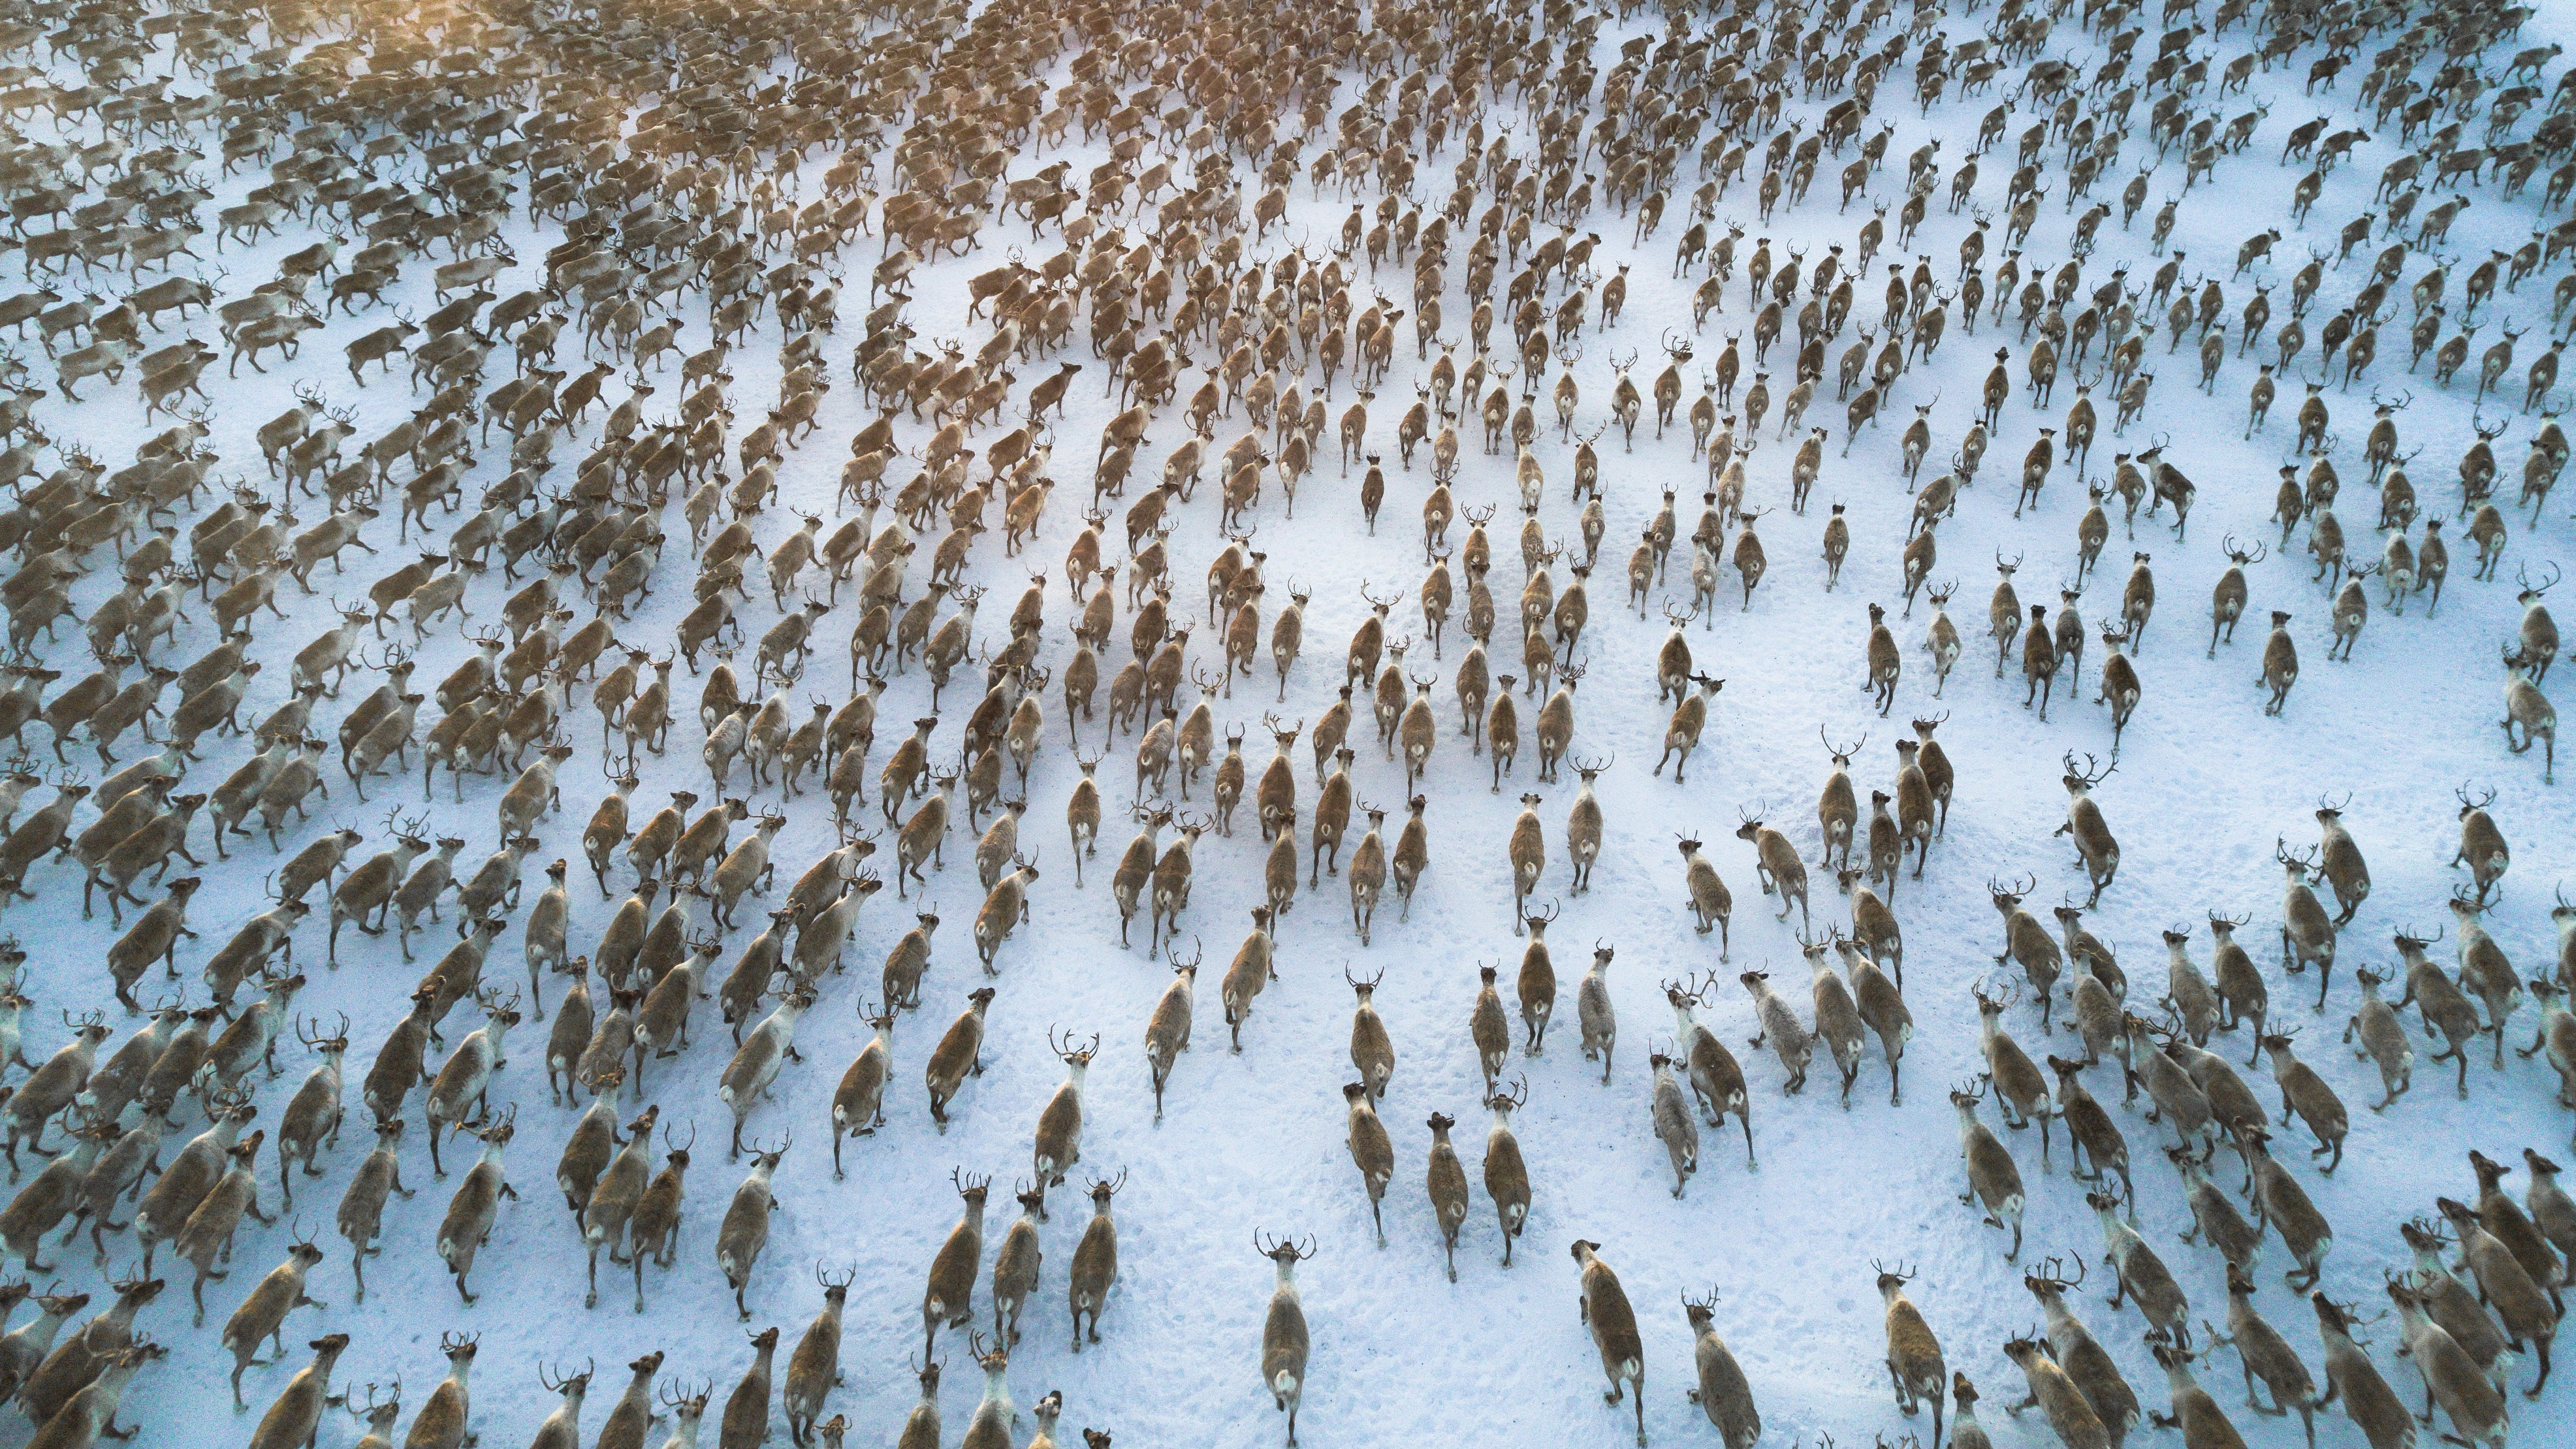 Packing the Tundra with Animals Could Slow Arctic Melt